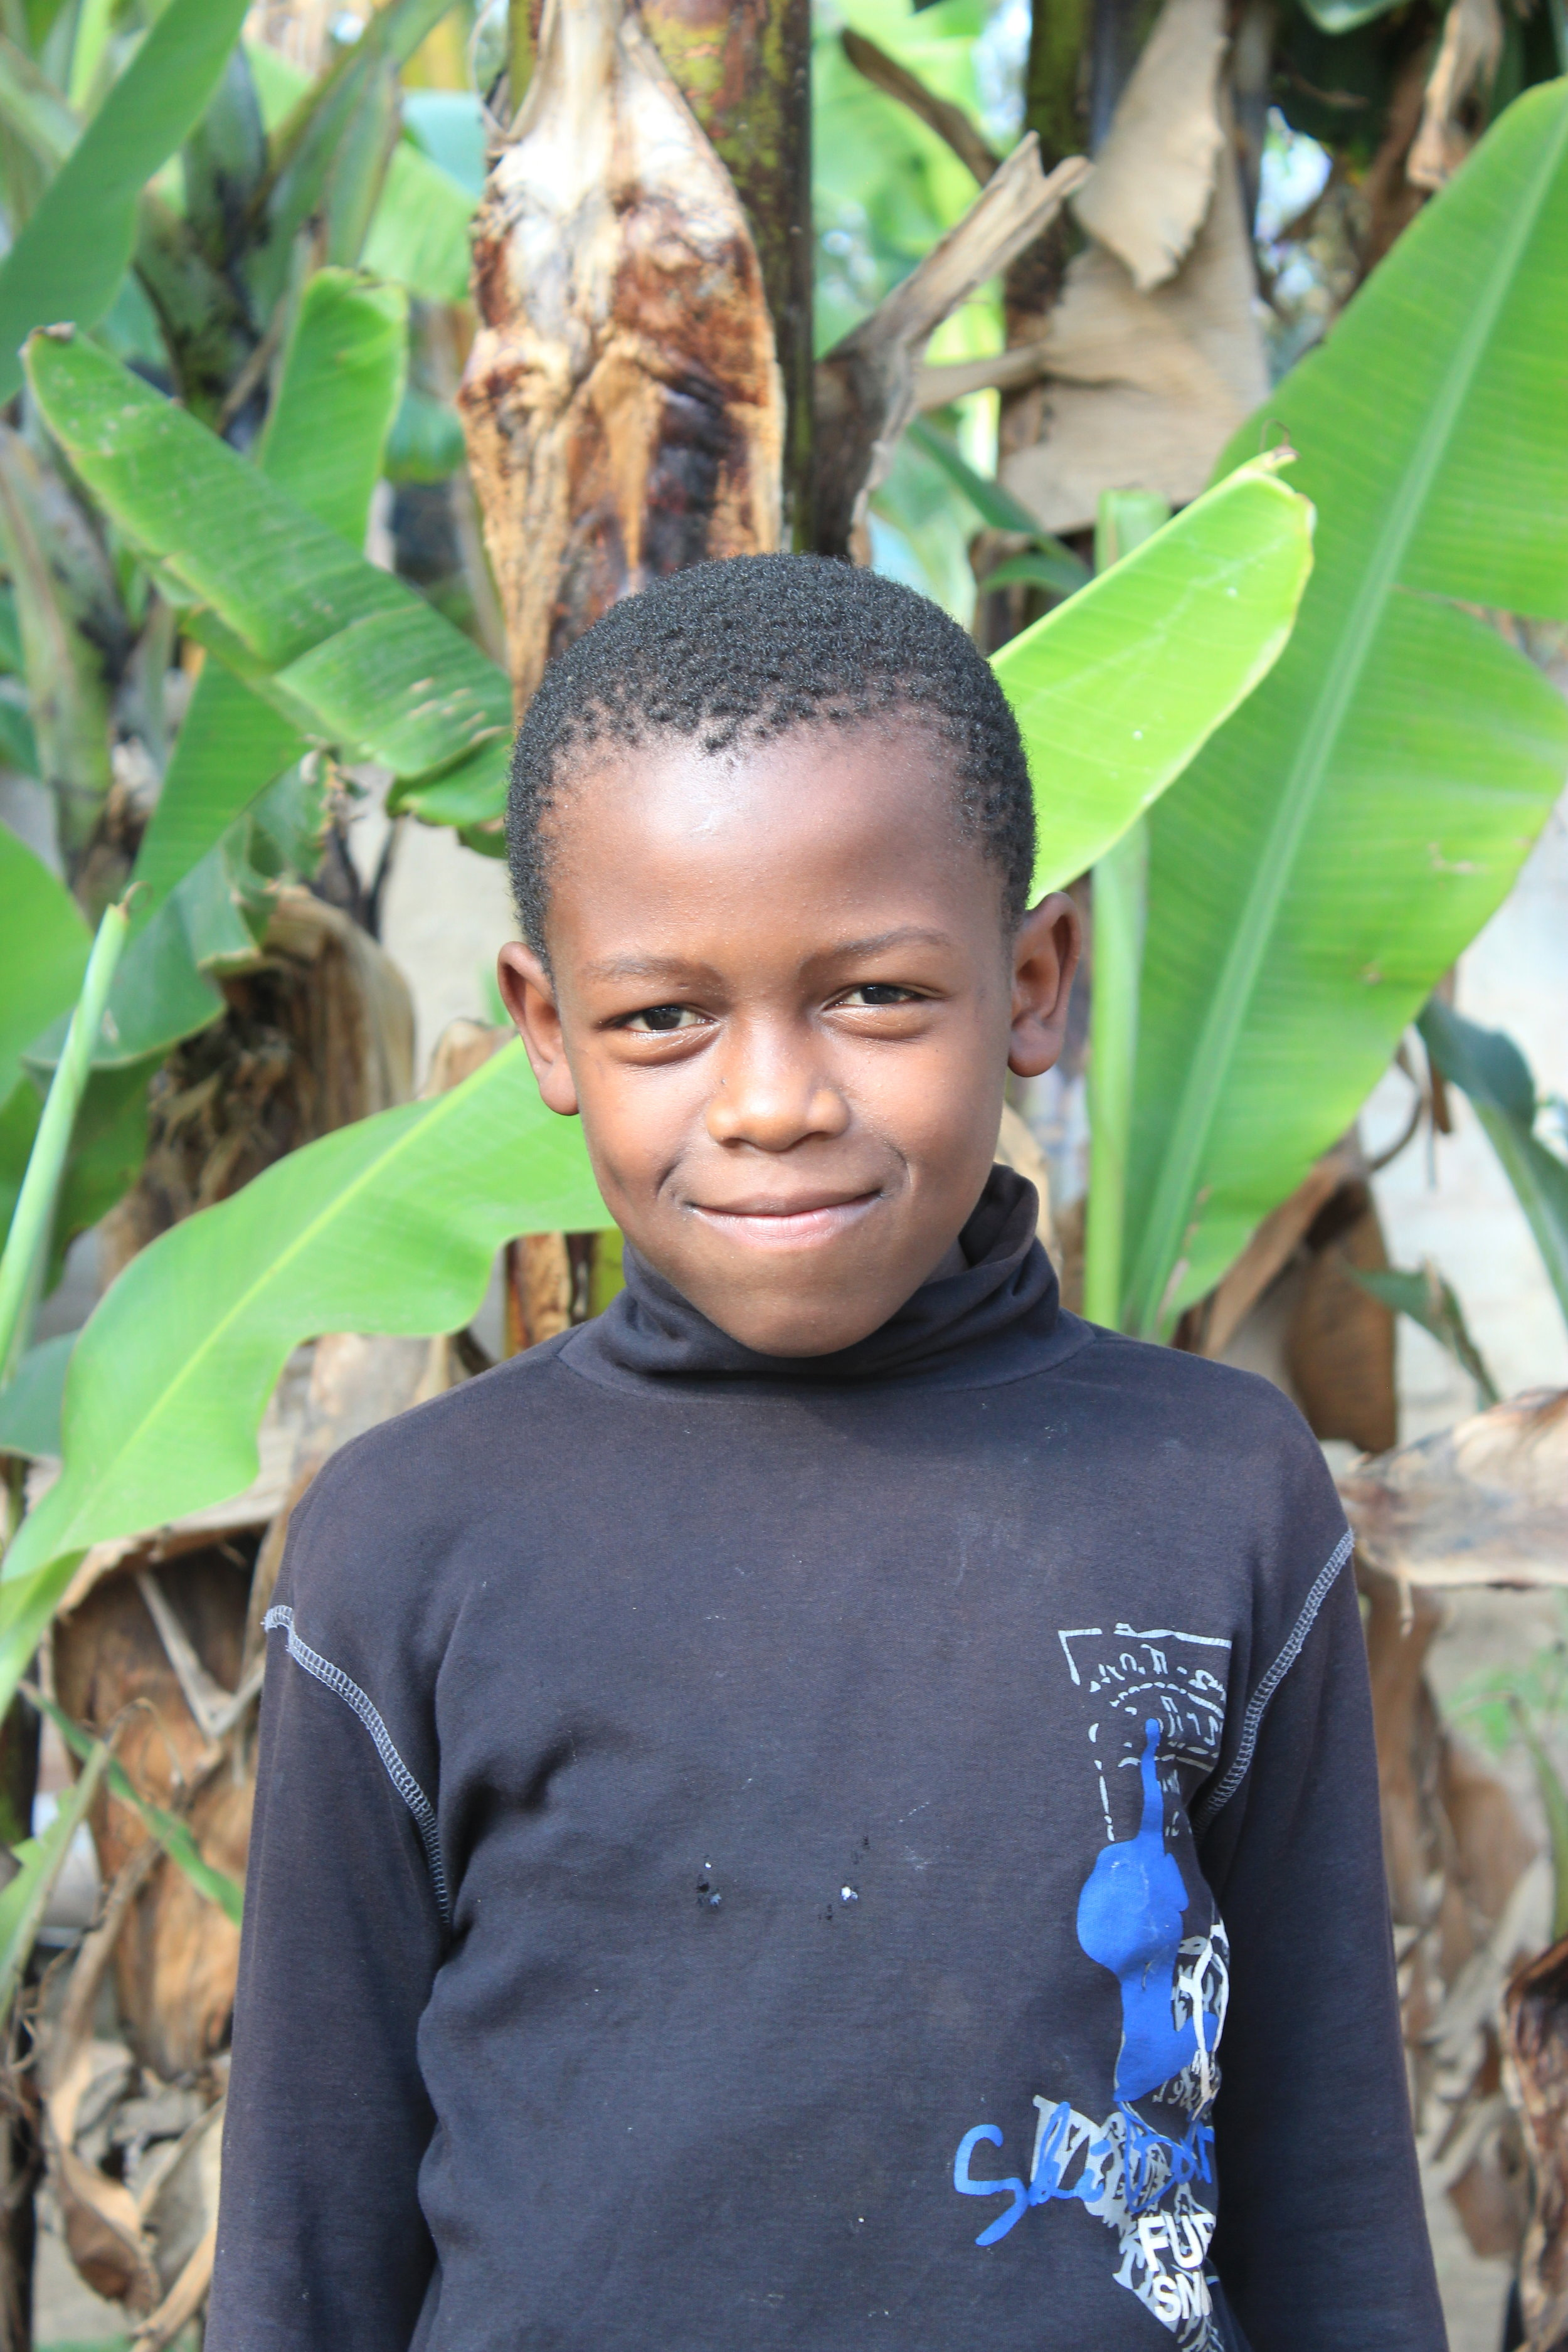 Joshua, 8 - Joshua's father died of HIV/AIDS and his mother is currently battling the disease and unable to care for him. Miraculously, Joshua is healthy and HIV/AIDS free! Joshua loves sports! He is always chasing a soccer ball and playing hard.